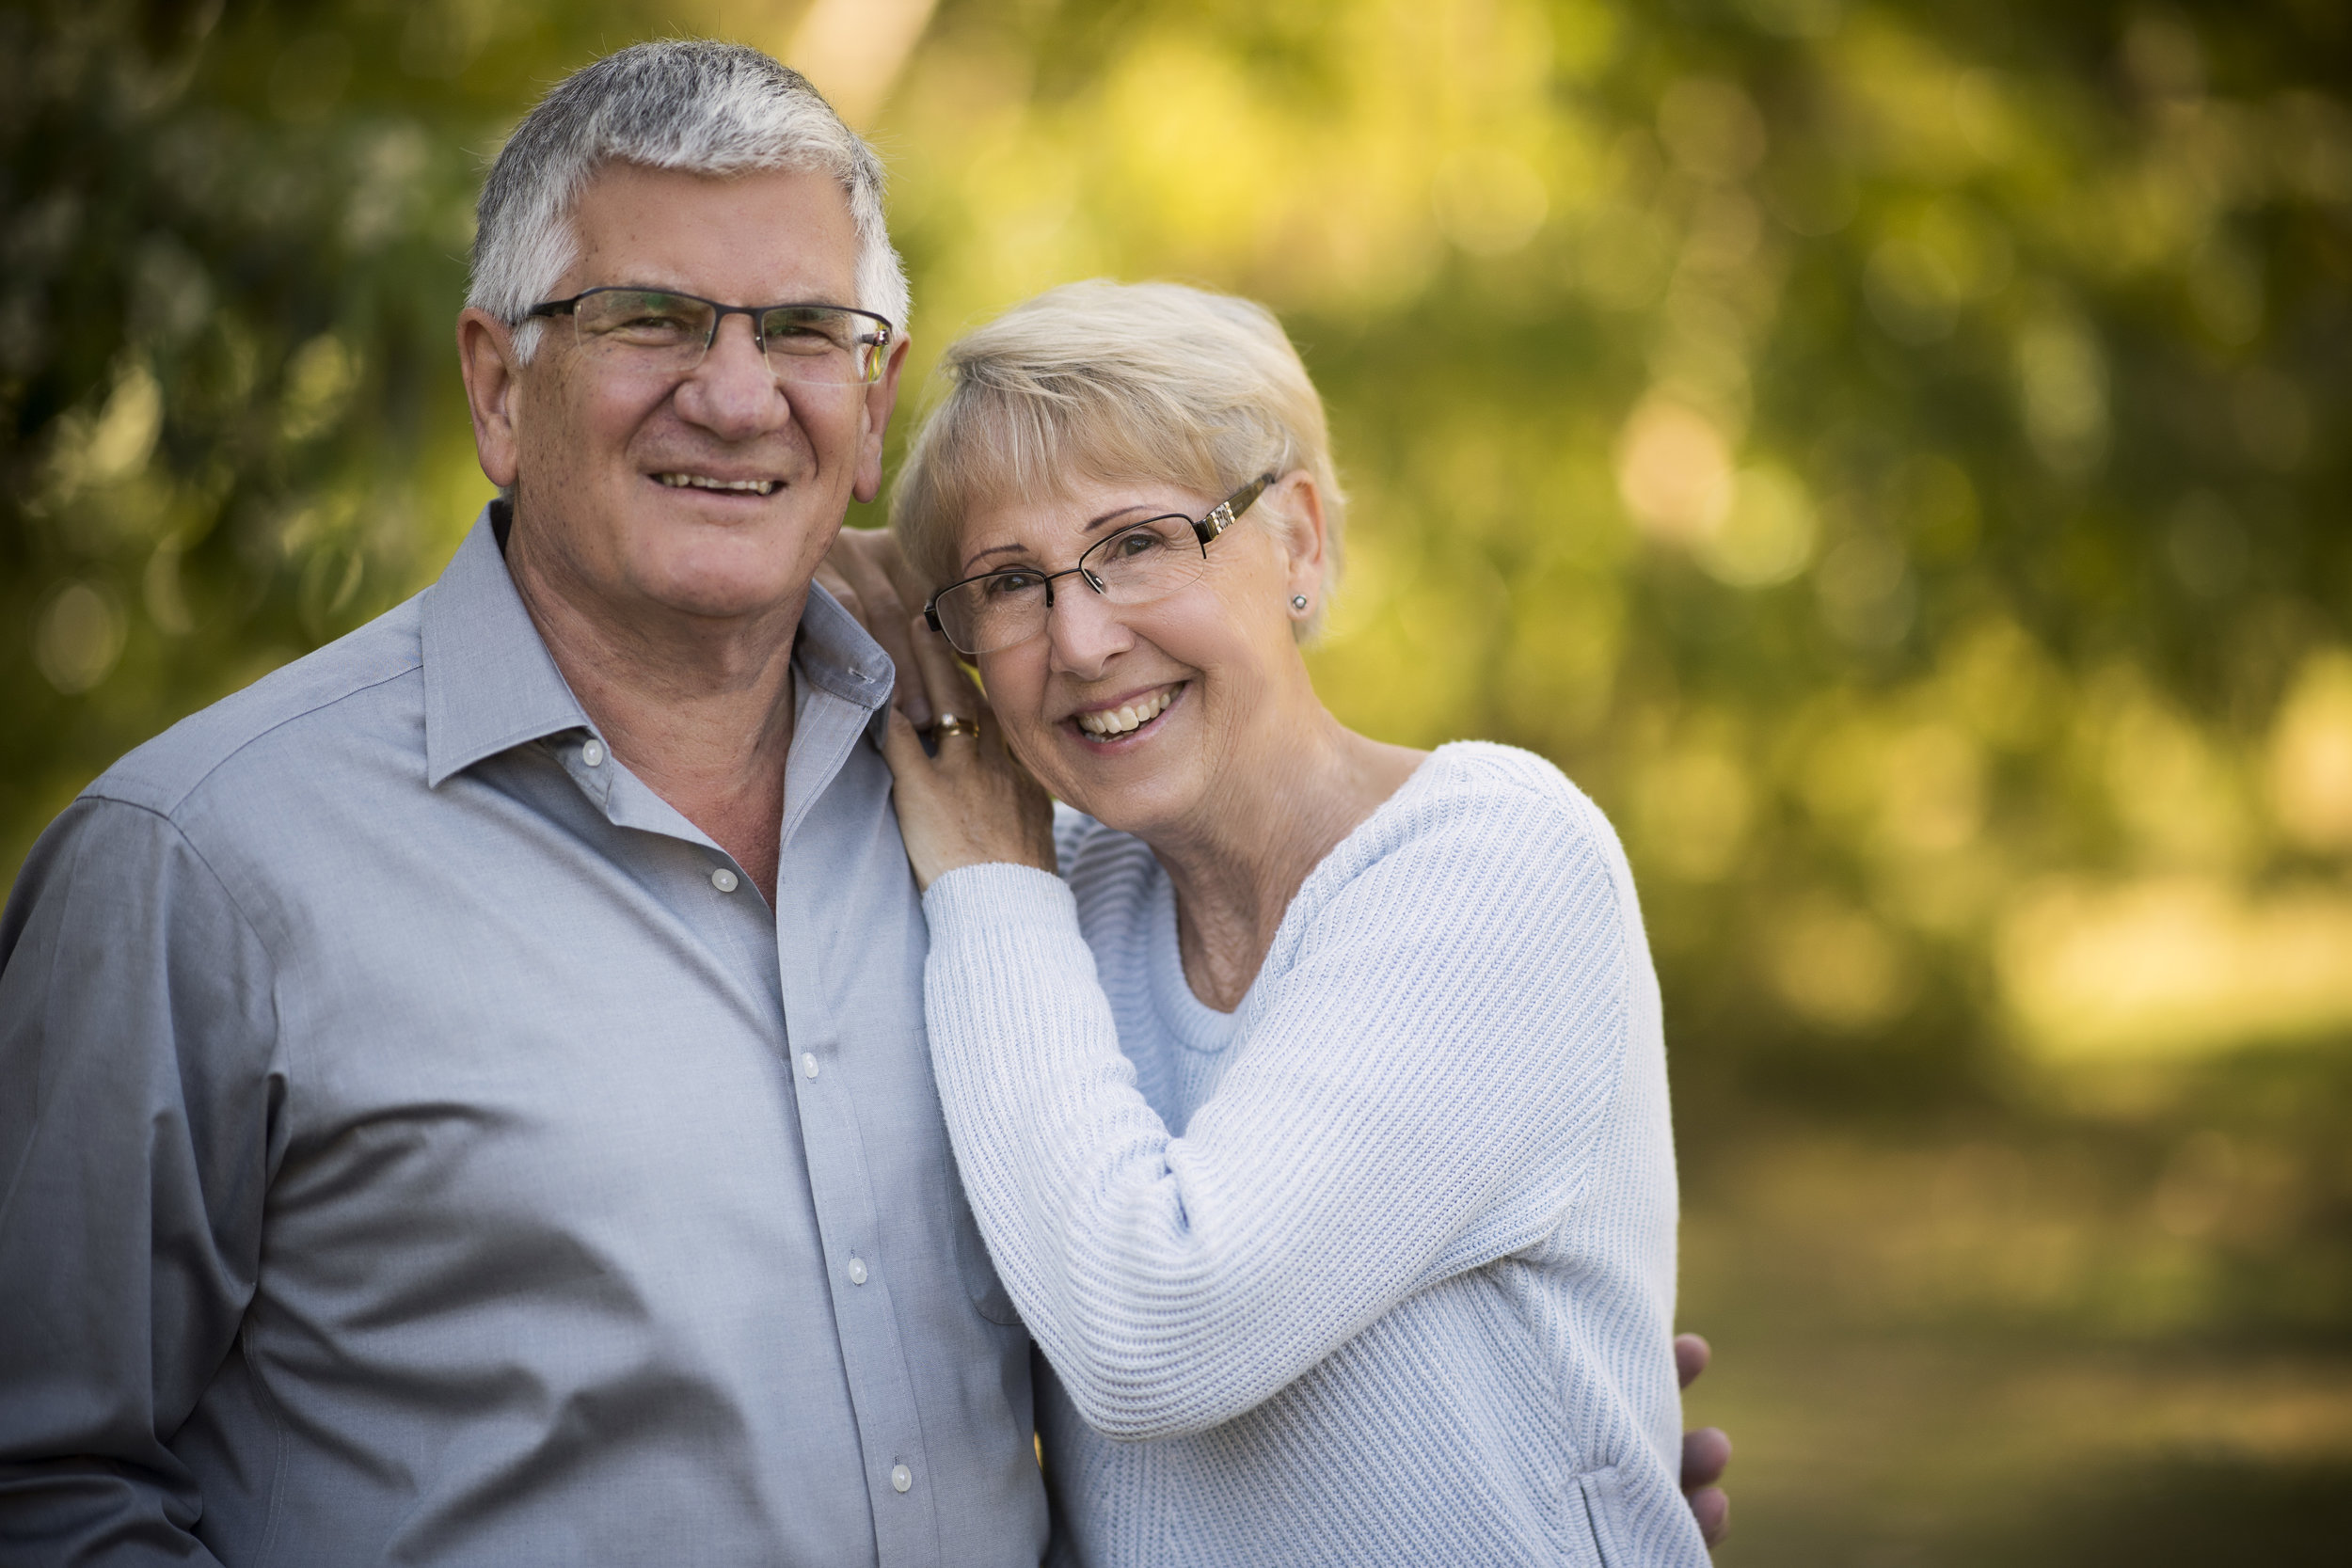 Peter and his wife, Sue, have been an active part of Sydney Hillsong's 'Hills' campus for over 20 years, and love to see churches grow and flourish to bless their communities - including business people. -